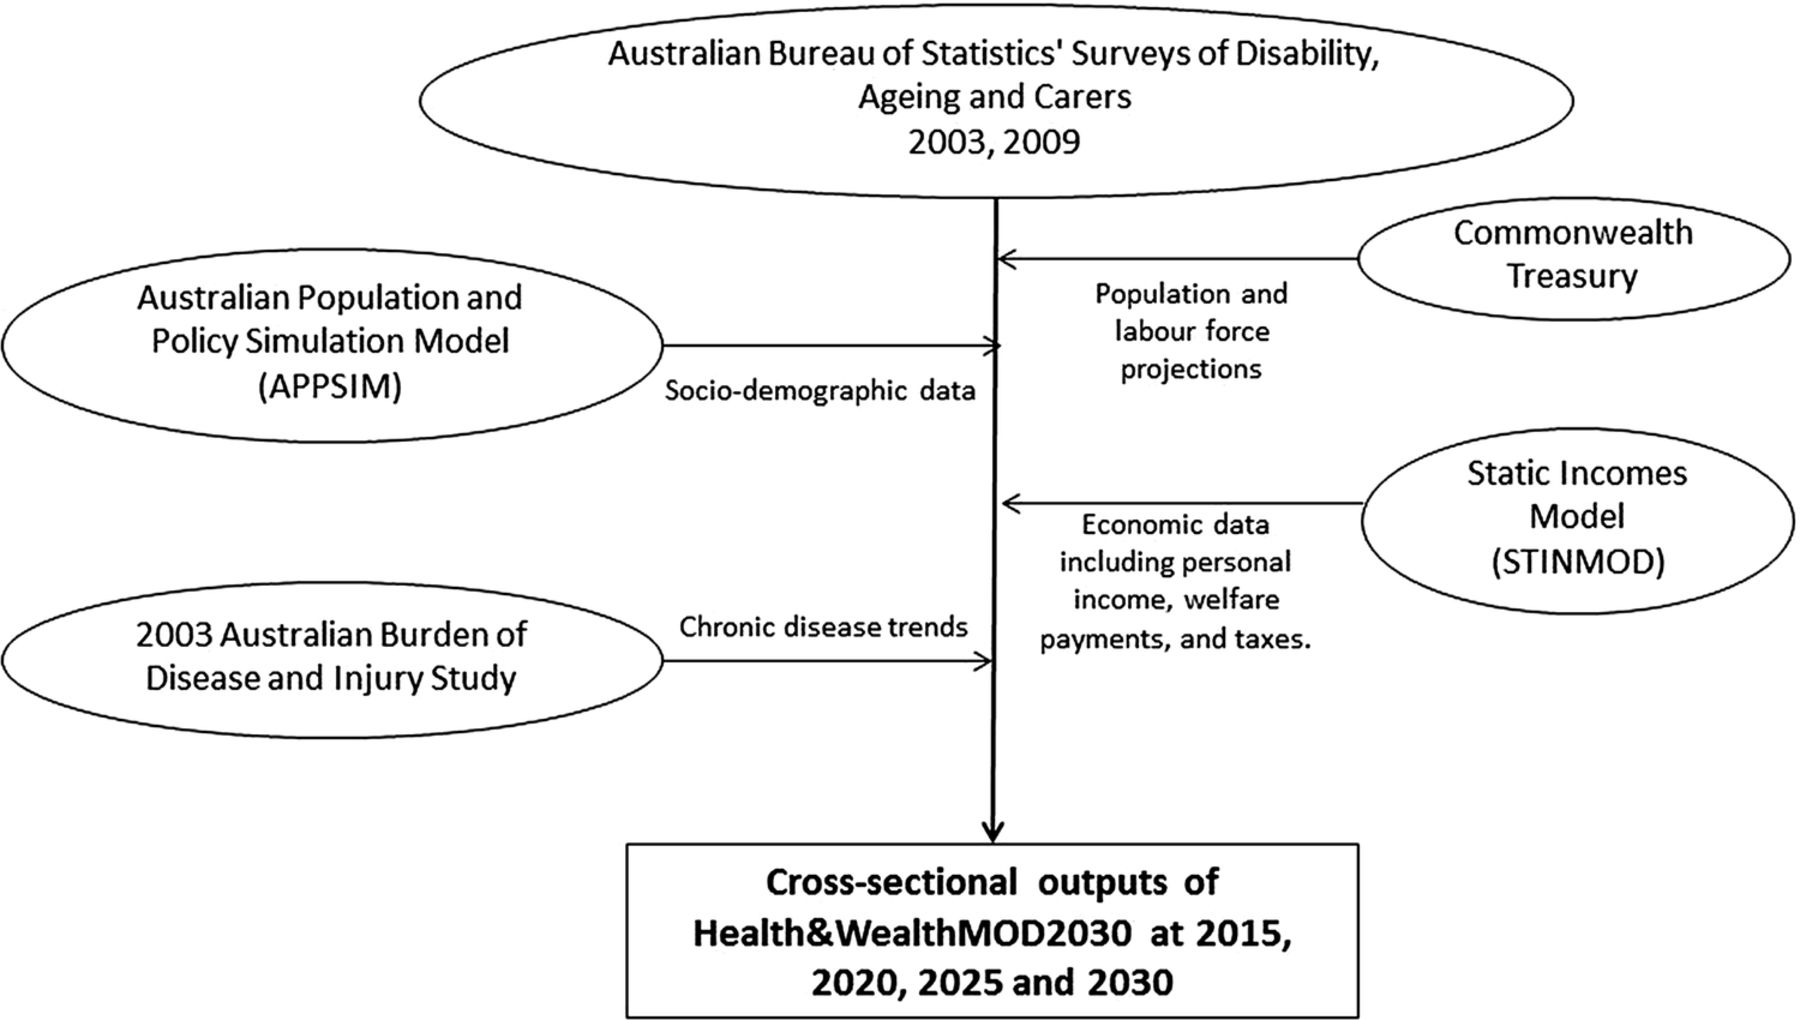 The Costs Of Diabetes Among Australians Aged 4564 Years From 2015 Circuit Diagram Powerpoint Download Figure Open In New Tab 1 Schematic Healthwealthmod2030